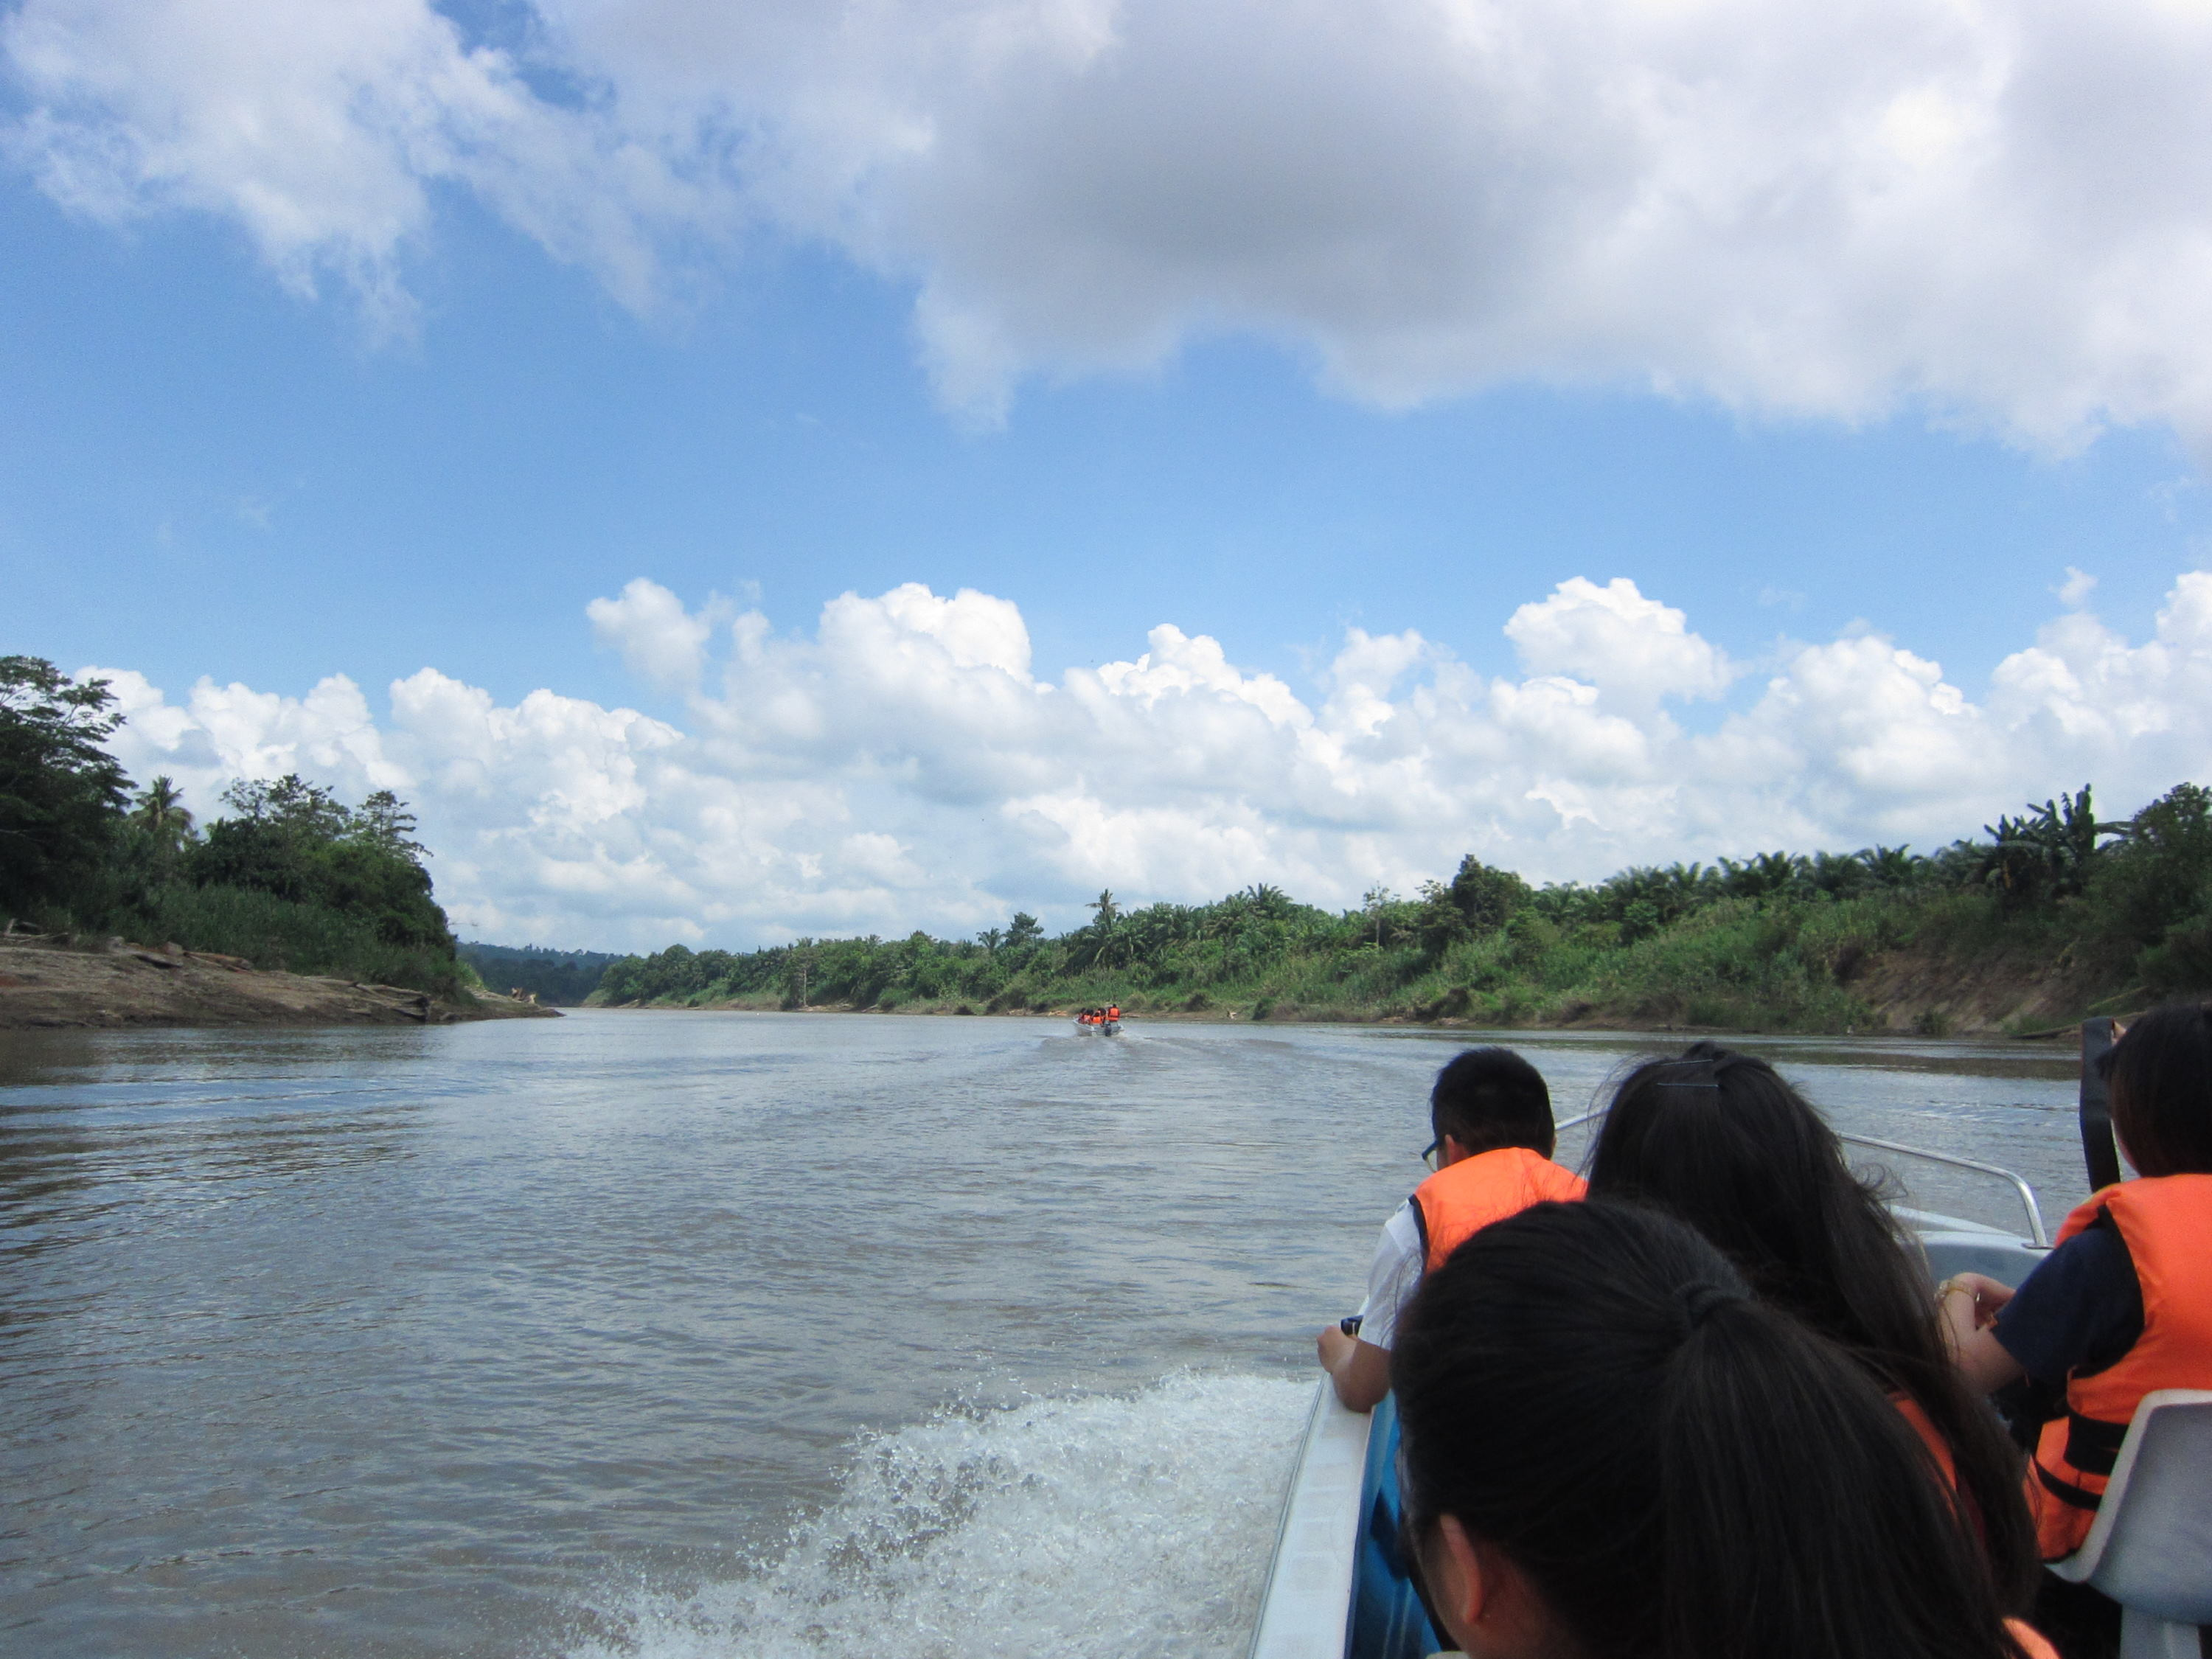 Boat ride on Kota Kinabatangan (Photo by Carmen Or)